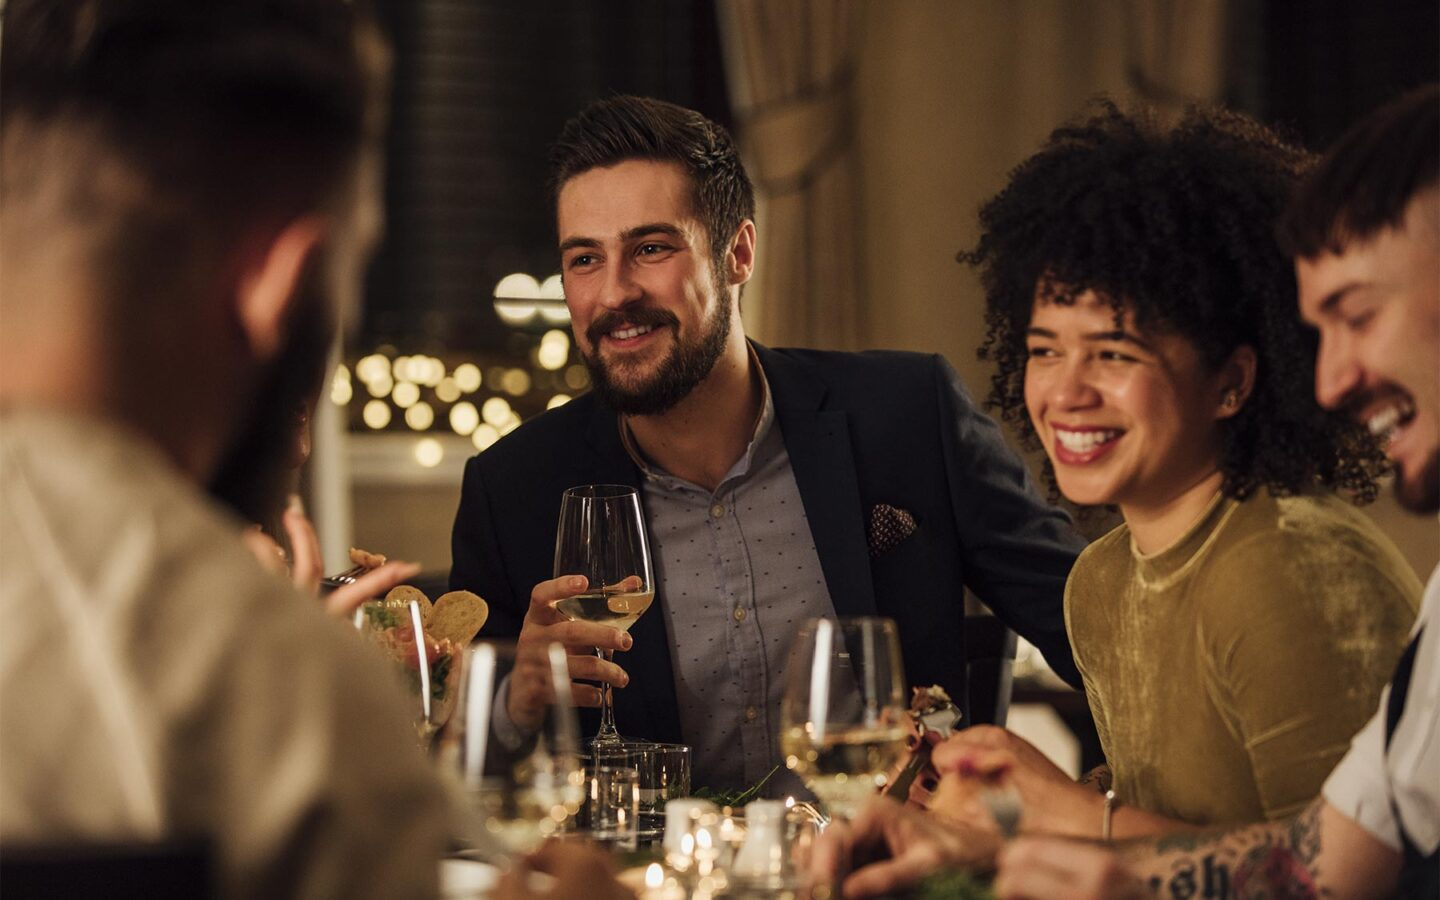 man and woman smiling at a restaurant table with wine glasses in hand